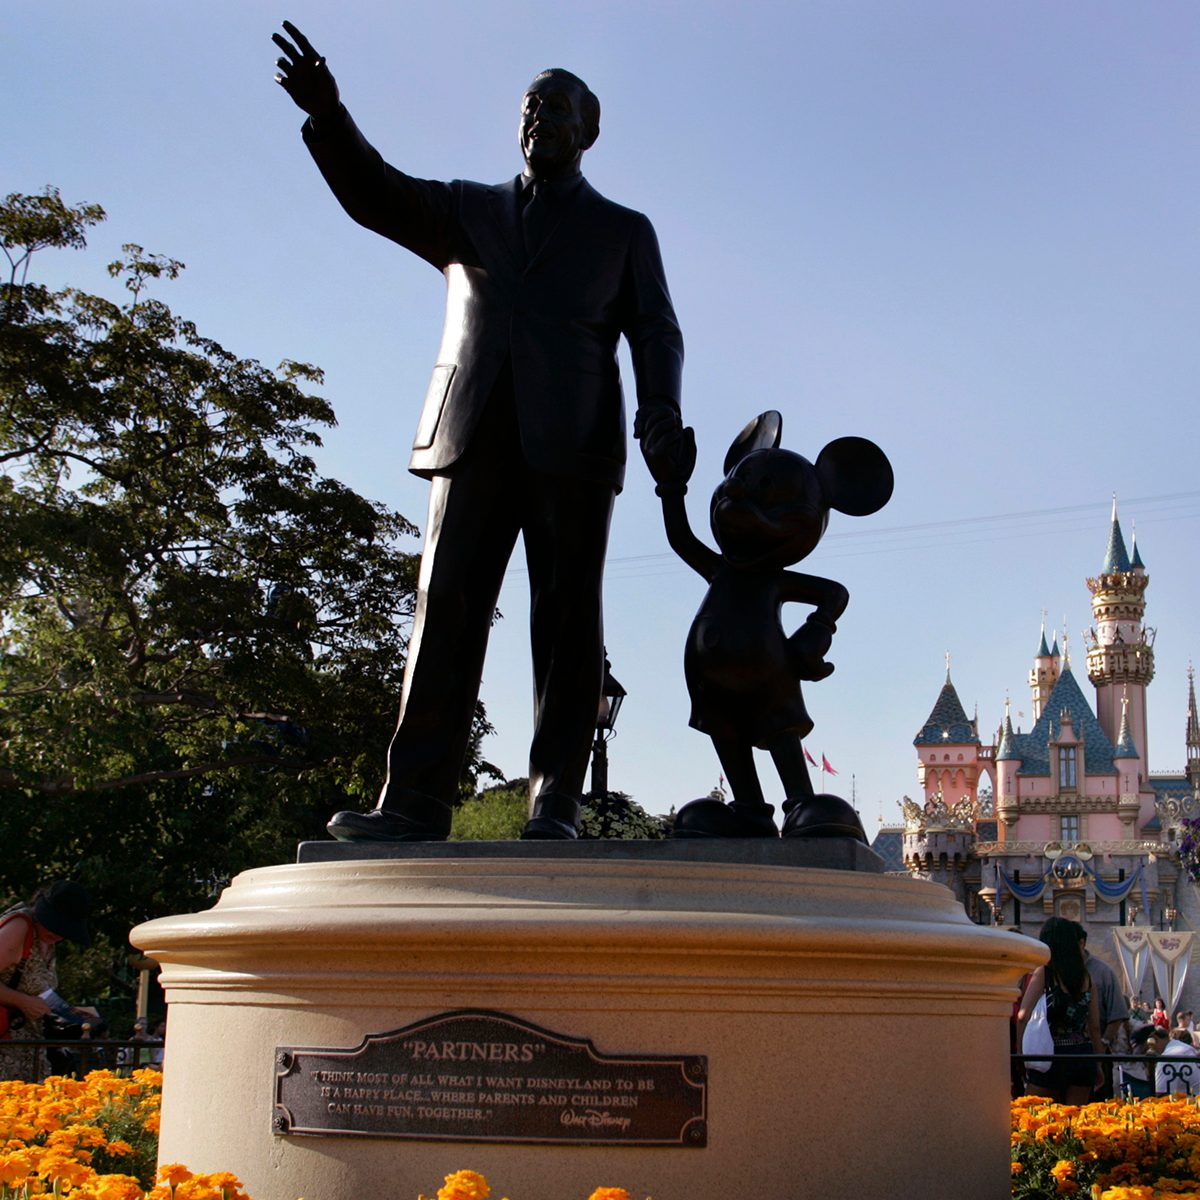 """Sleeping Beauty's Castle can be seen in the backround as people make their way past the """"Partners"""" statue (depicting Walt Disney and Mickey Mouse) at Disneyland, Friday July 15, 2005, in Anaheim. Disneyland celebrated its 50th anniversary on July 17, 2005. (Photo by Richard Hartog/Los Angeles Times via Getty Images)"""